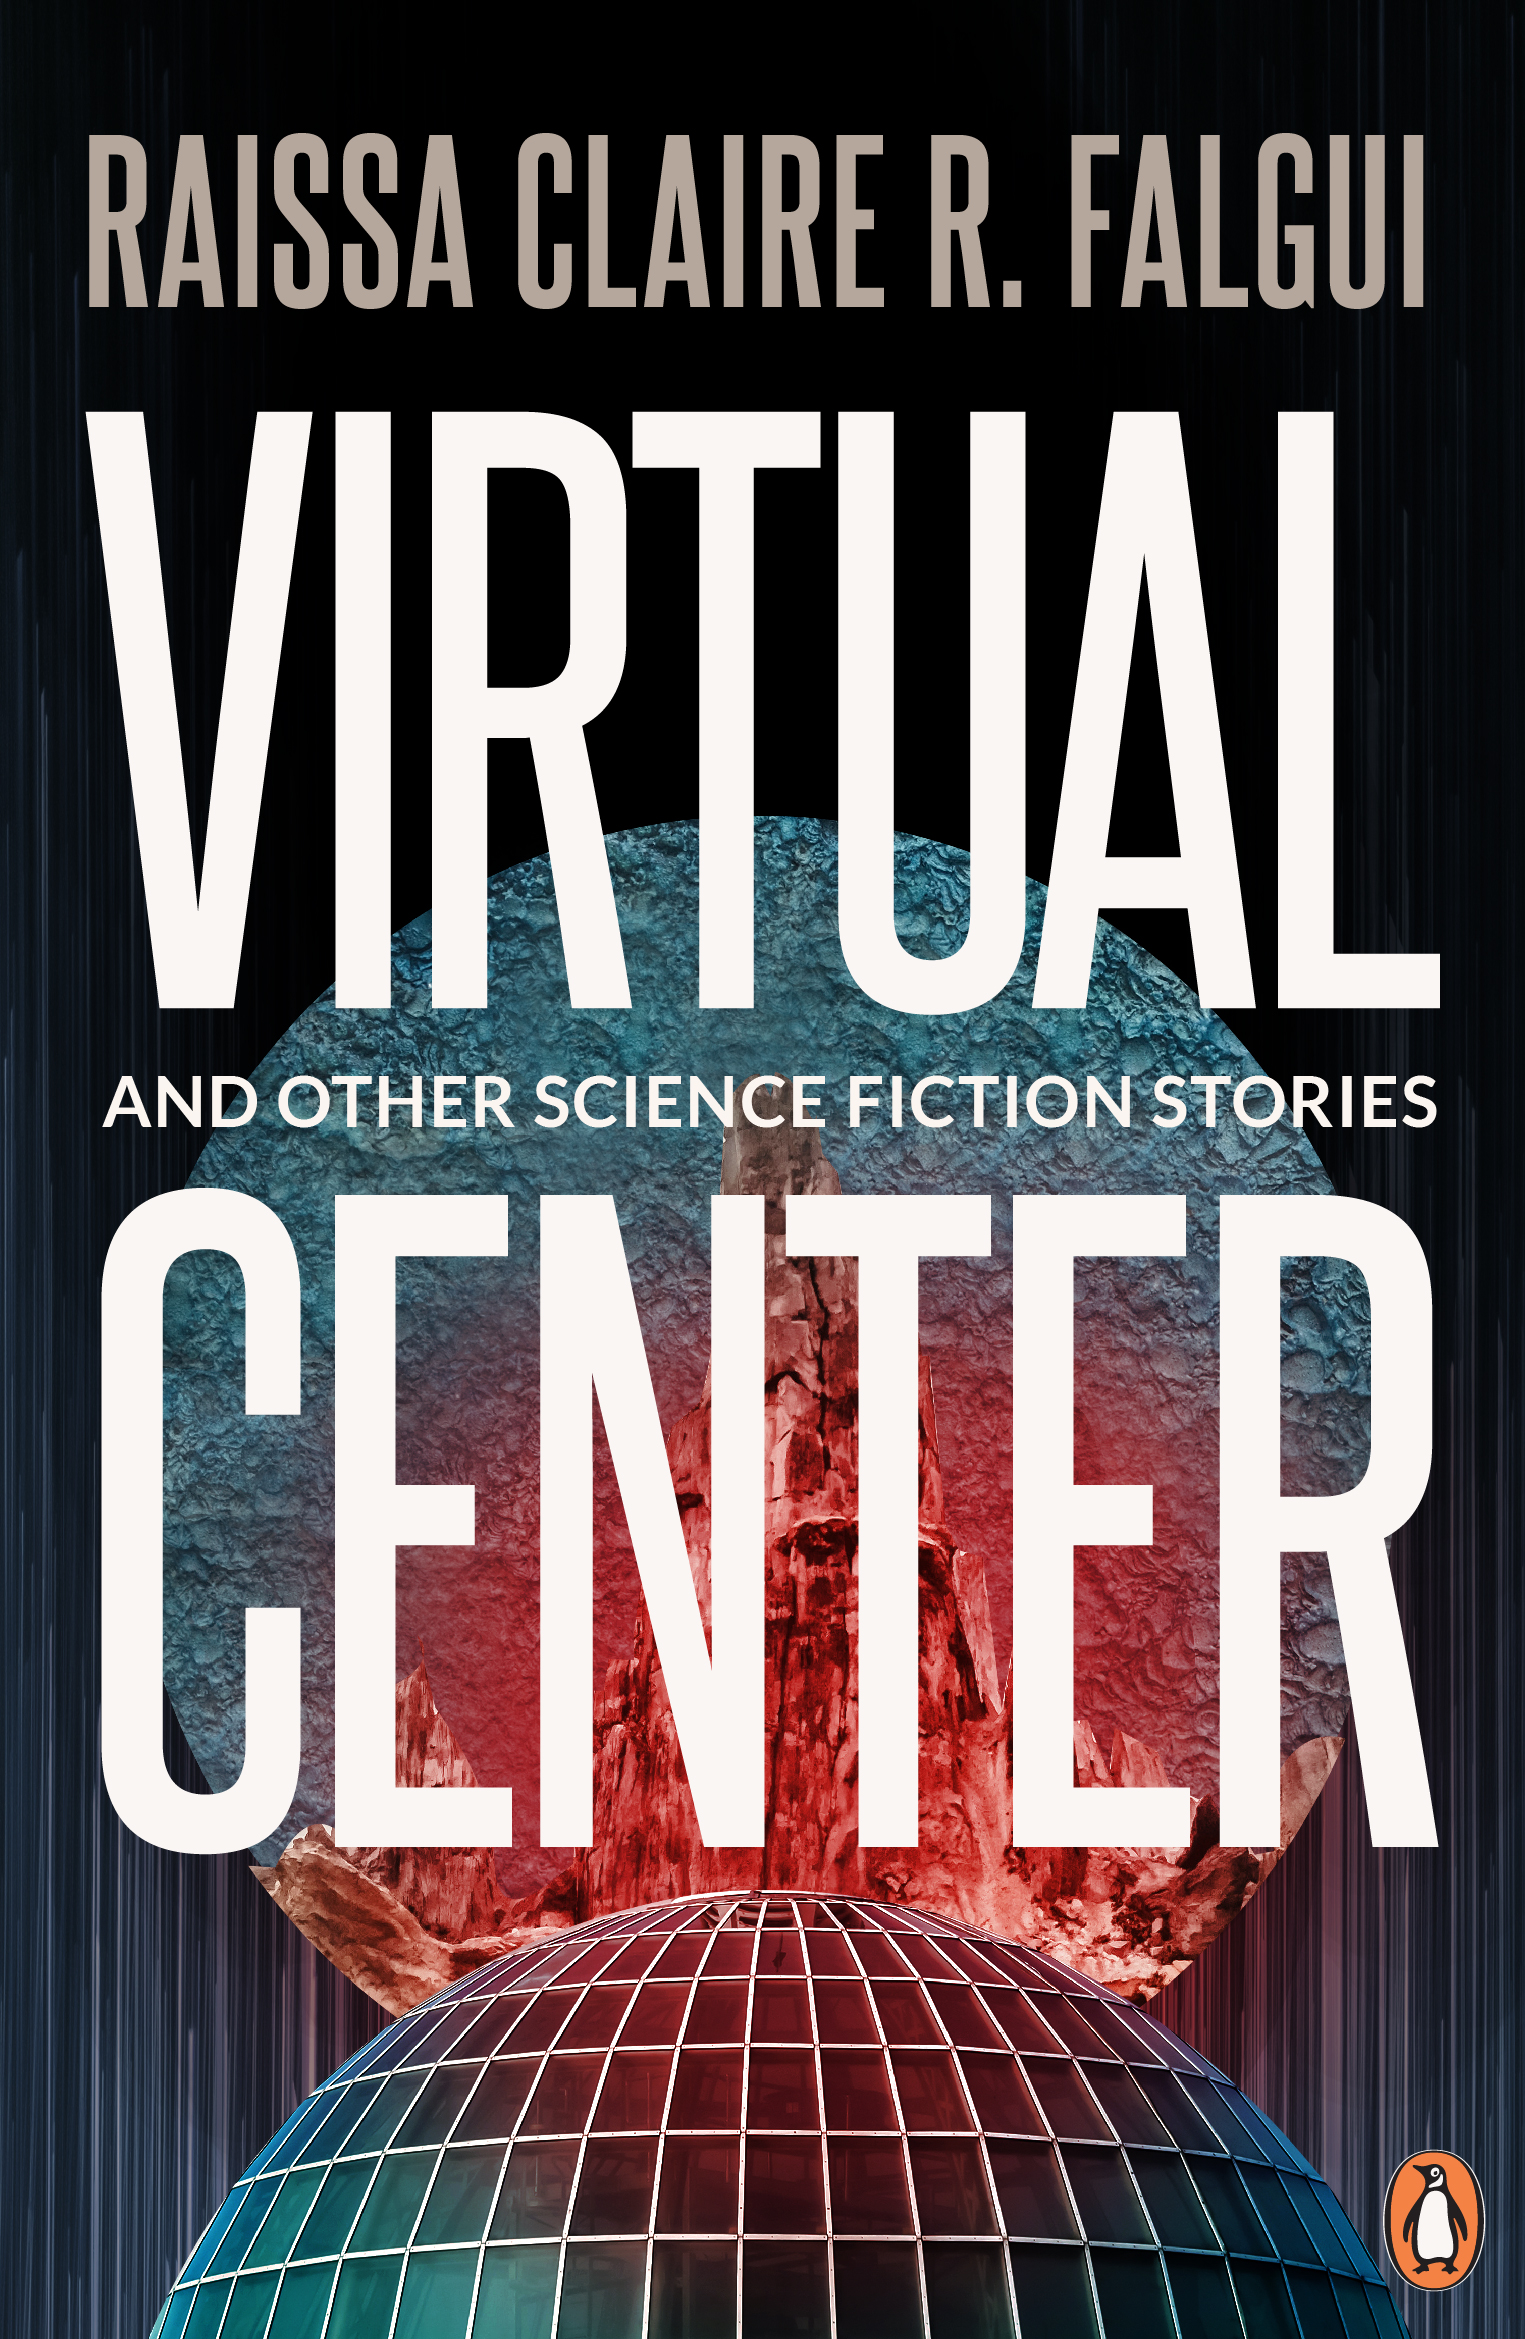 Virtual Center and Other Science Fiction Stories